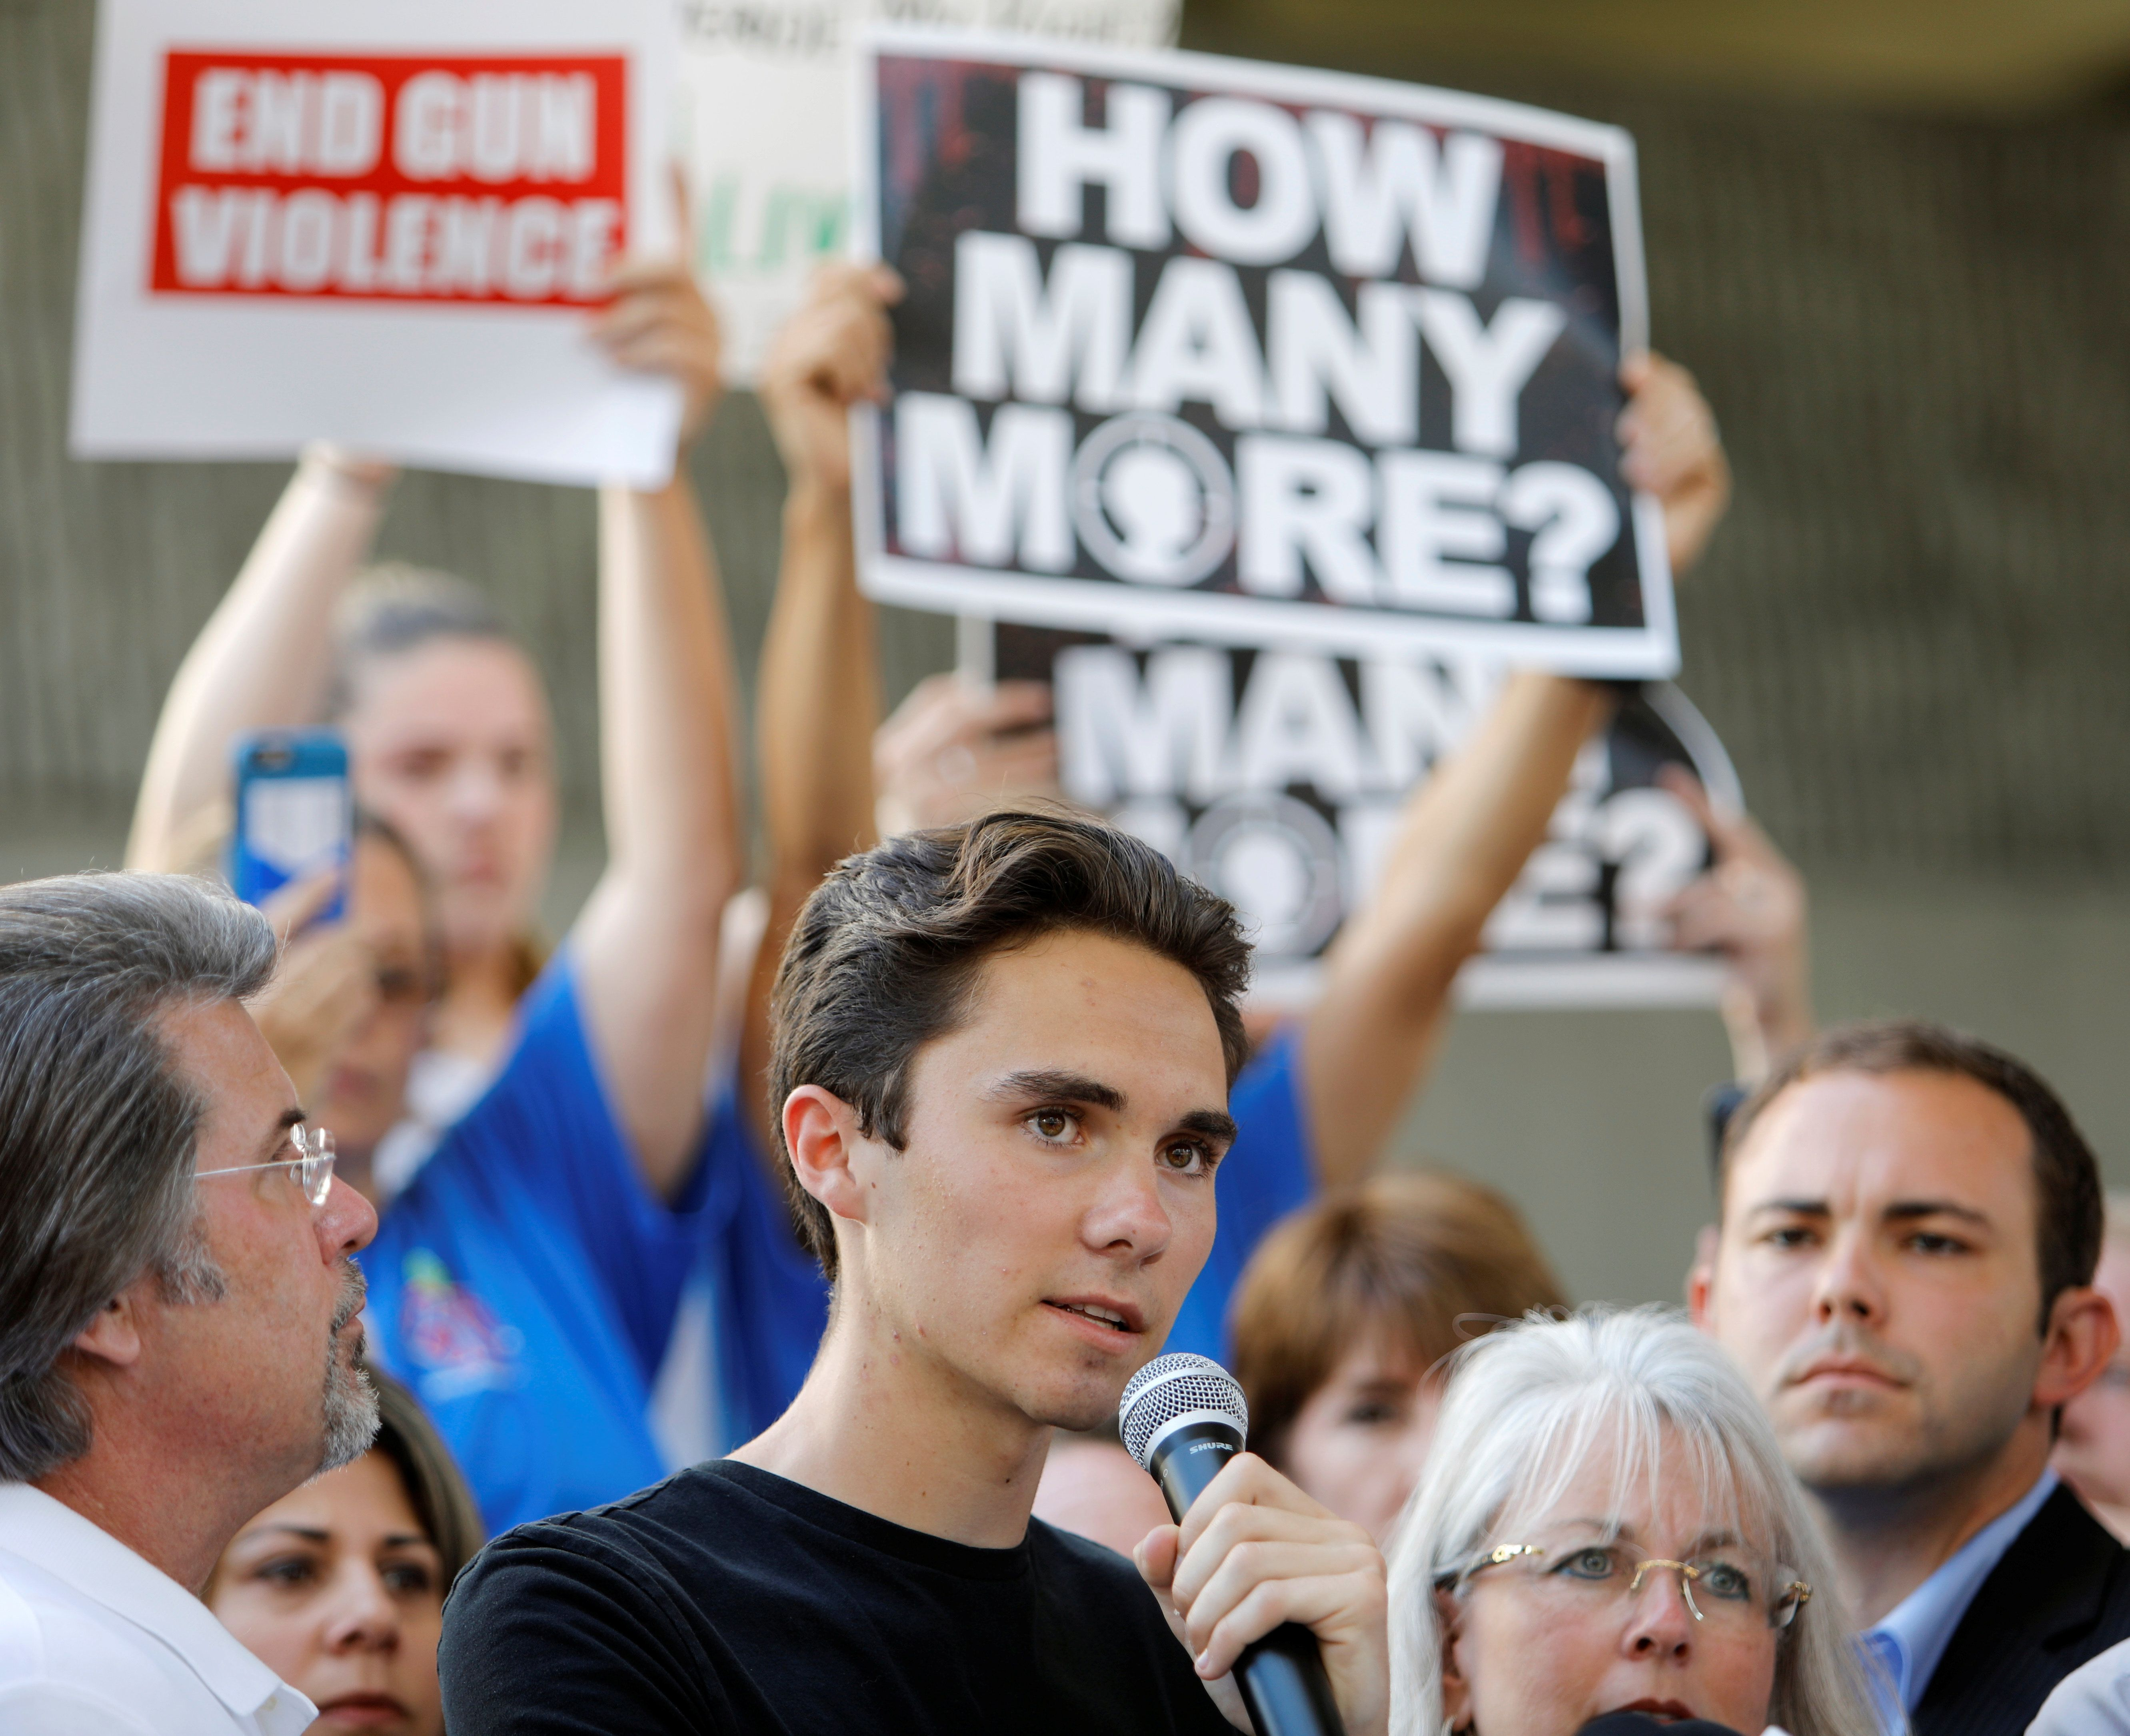 David Hogg, a senior at Marjory Stoneman Douglas High School, speaks at a rally calling for more gun control three days after the shooting at his school, in Fort Lauderdale, Florida, U.S. February 17, 2018.   REUTERS/Jonathan Drake